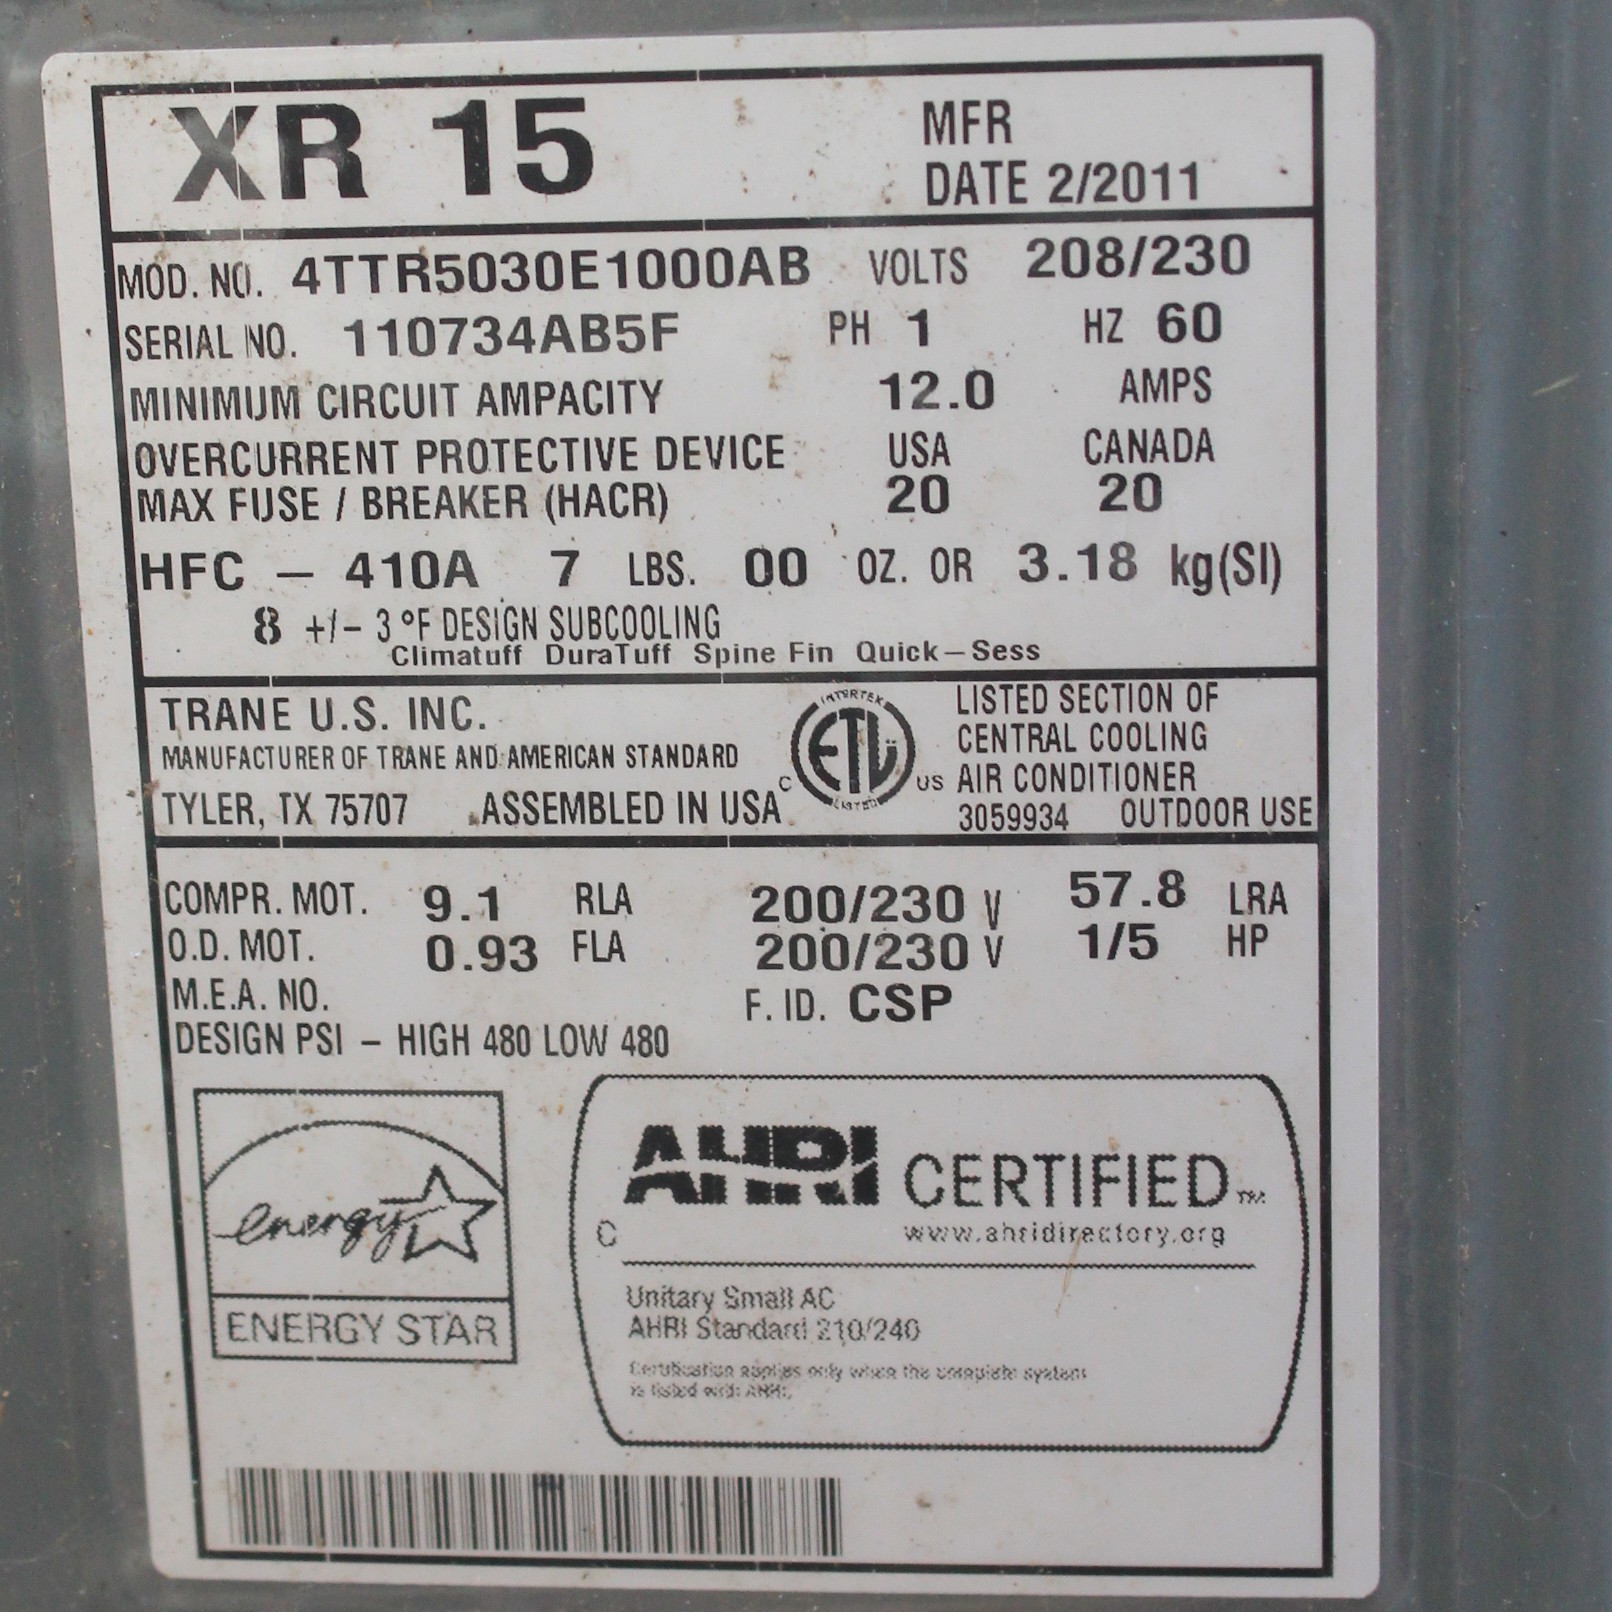 a/c which uses r-410a refrigerant